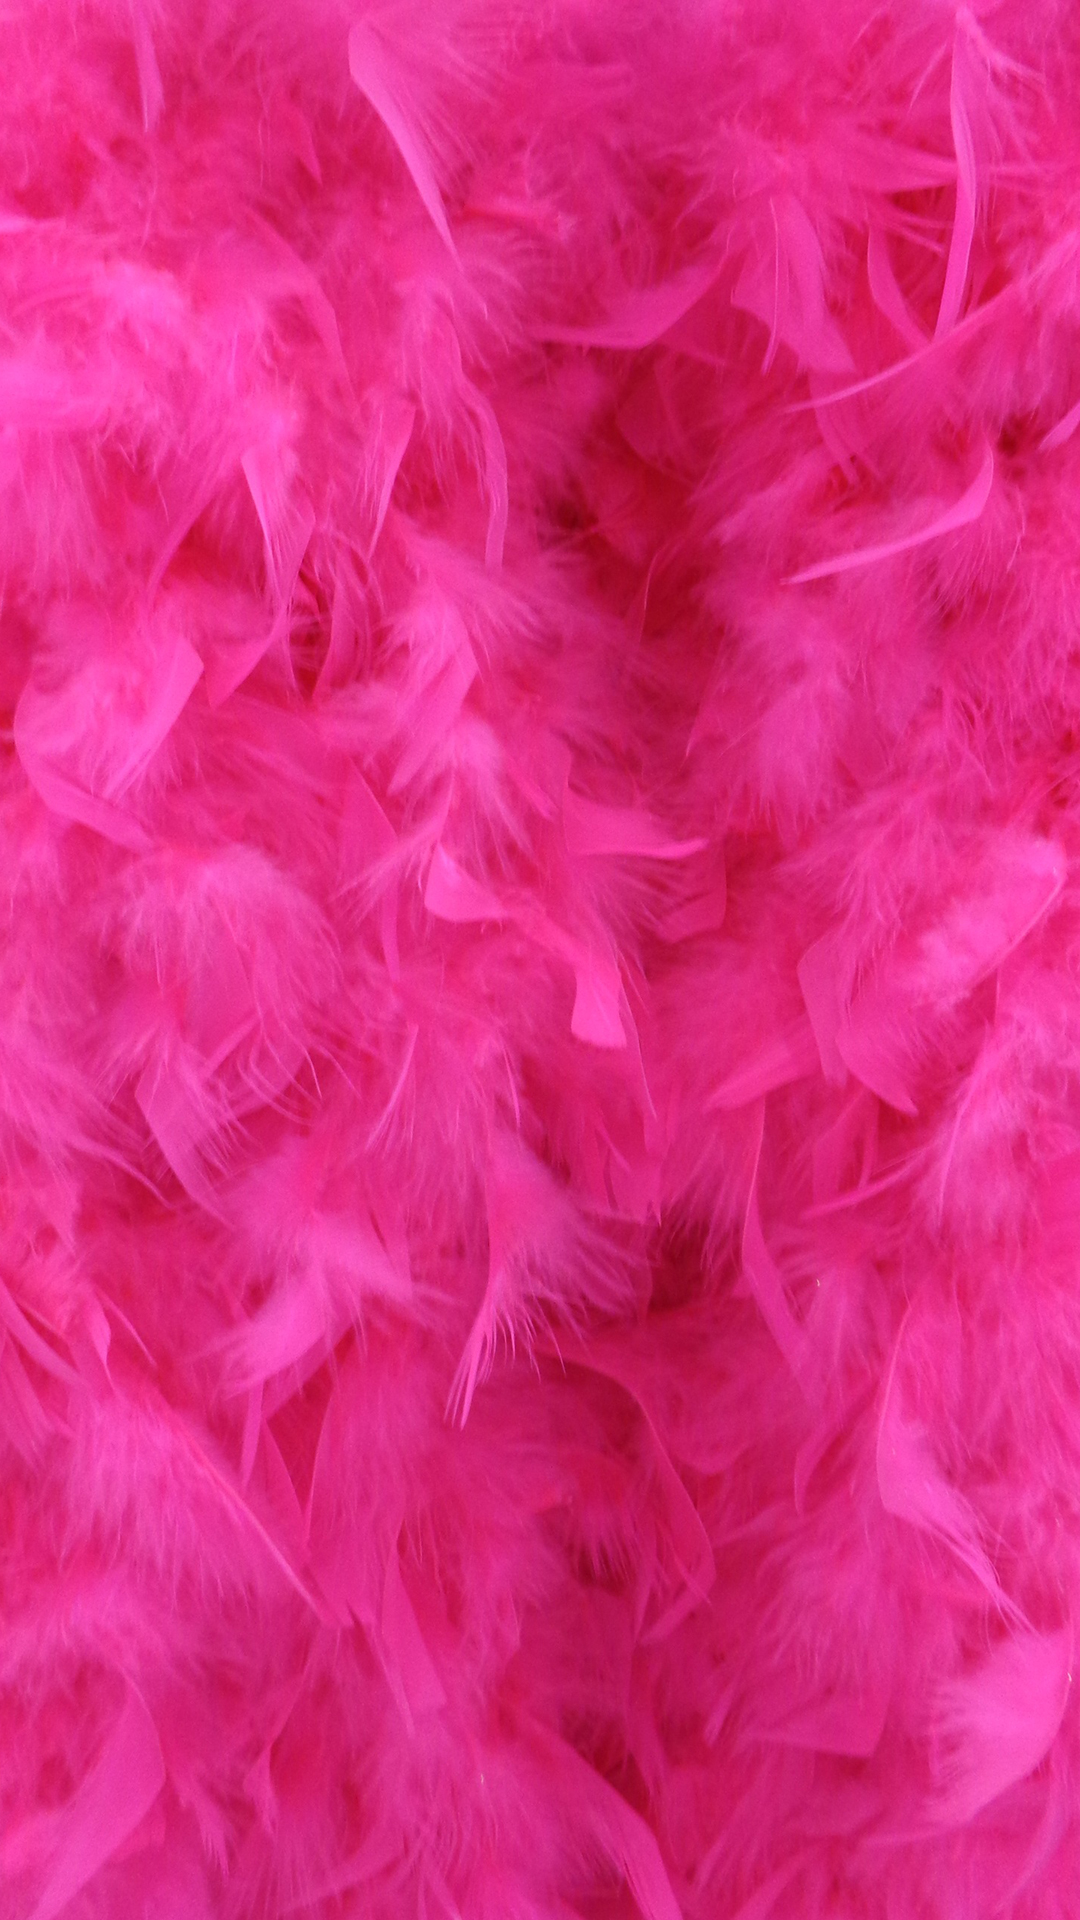 pink-feathers-4471